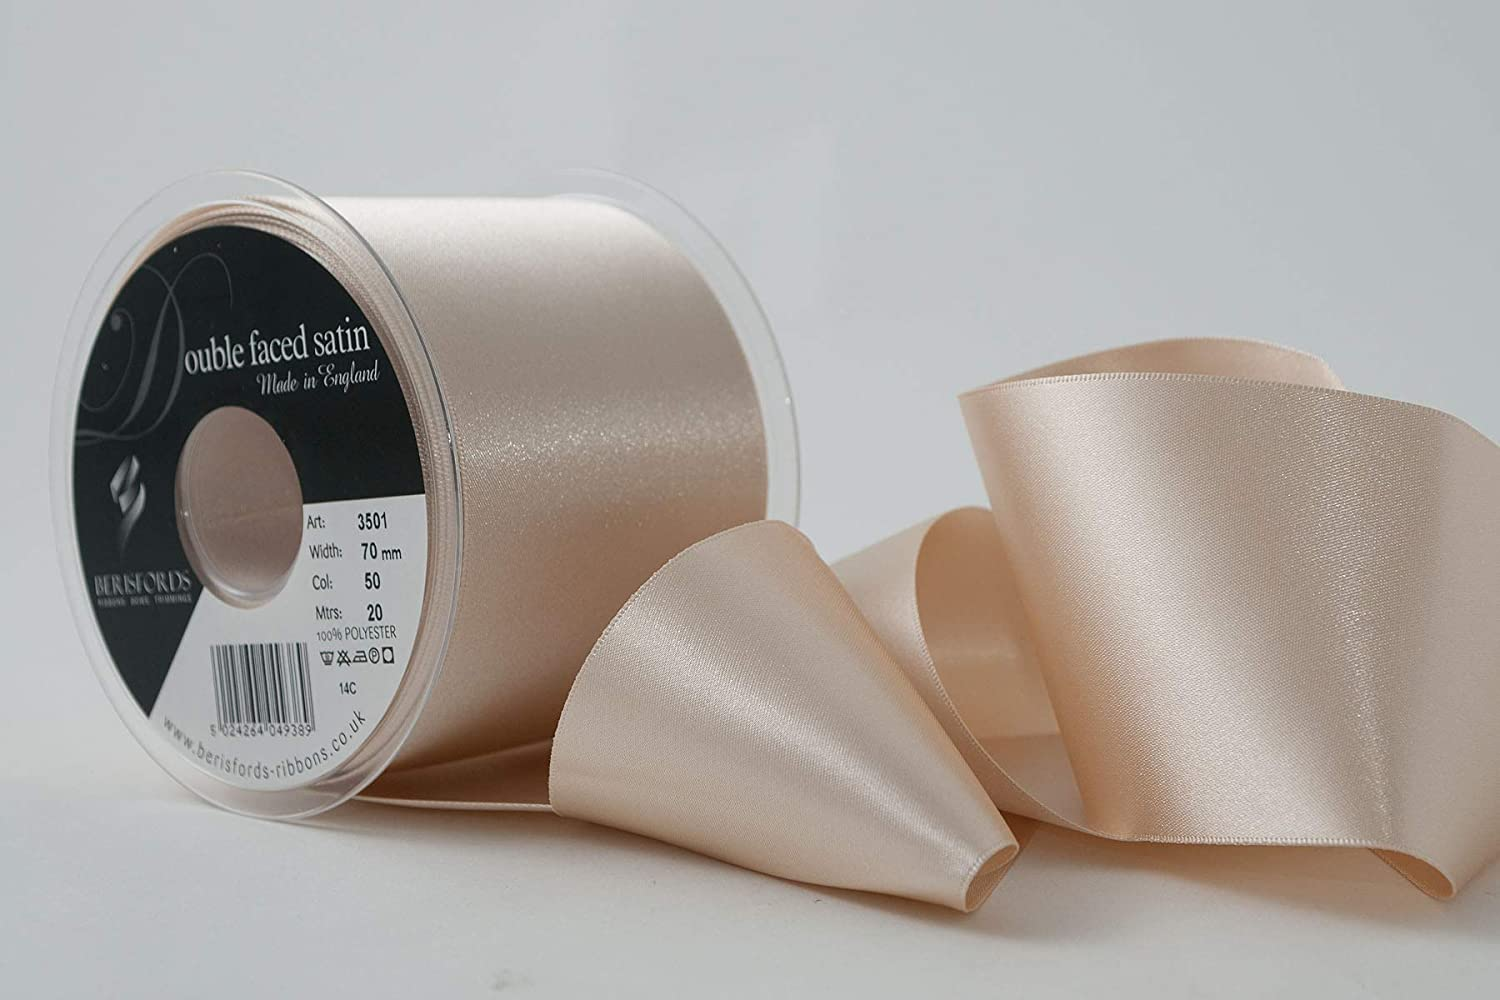 Double Faced Satin by Berisfords-Cream-9 Widths-2 Meter and 5 Meter Lengths-Weddings,Cake Decorations,Crafts,Embellishments,Trimmings